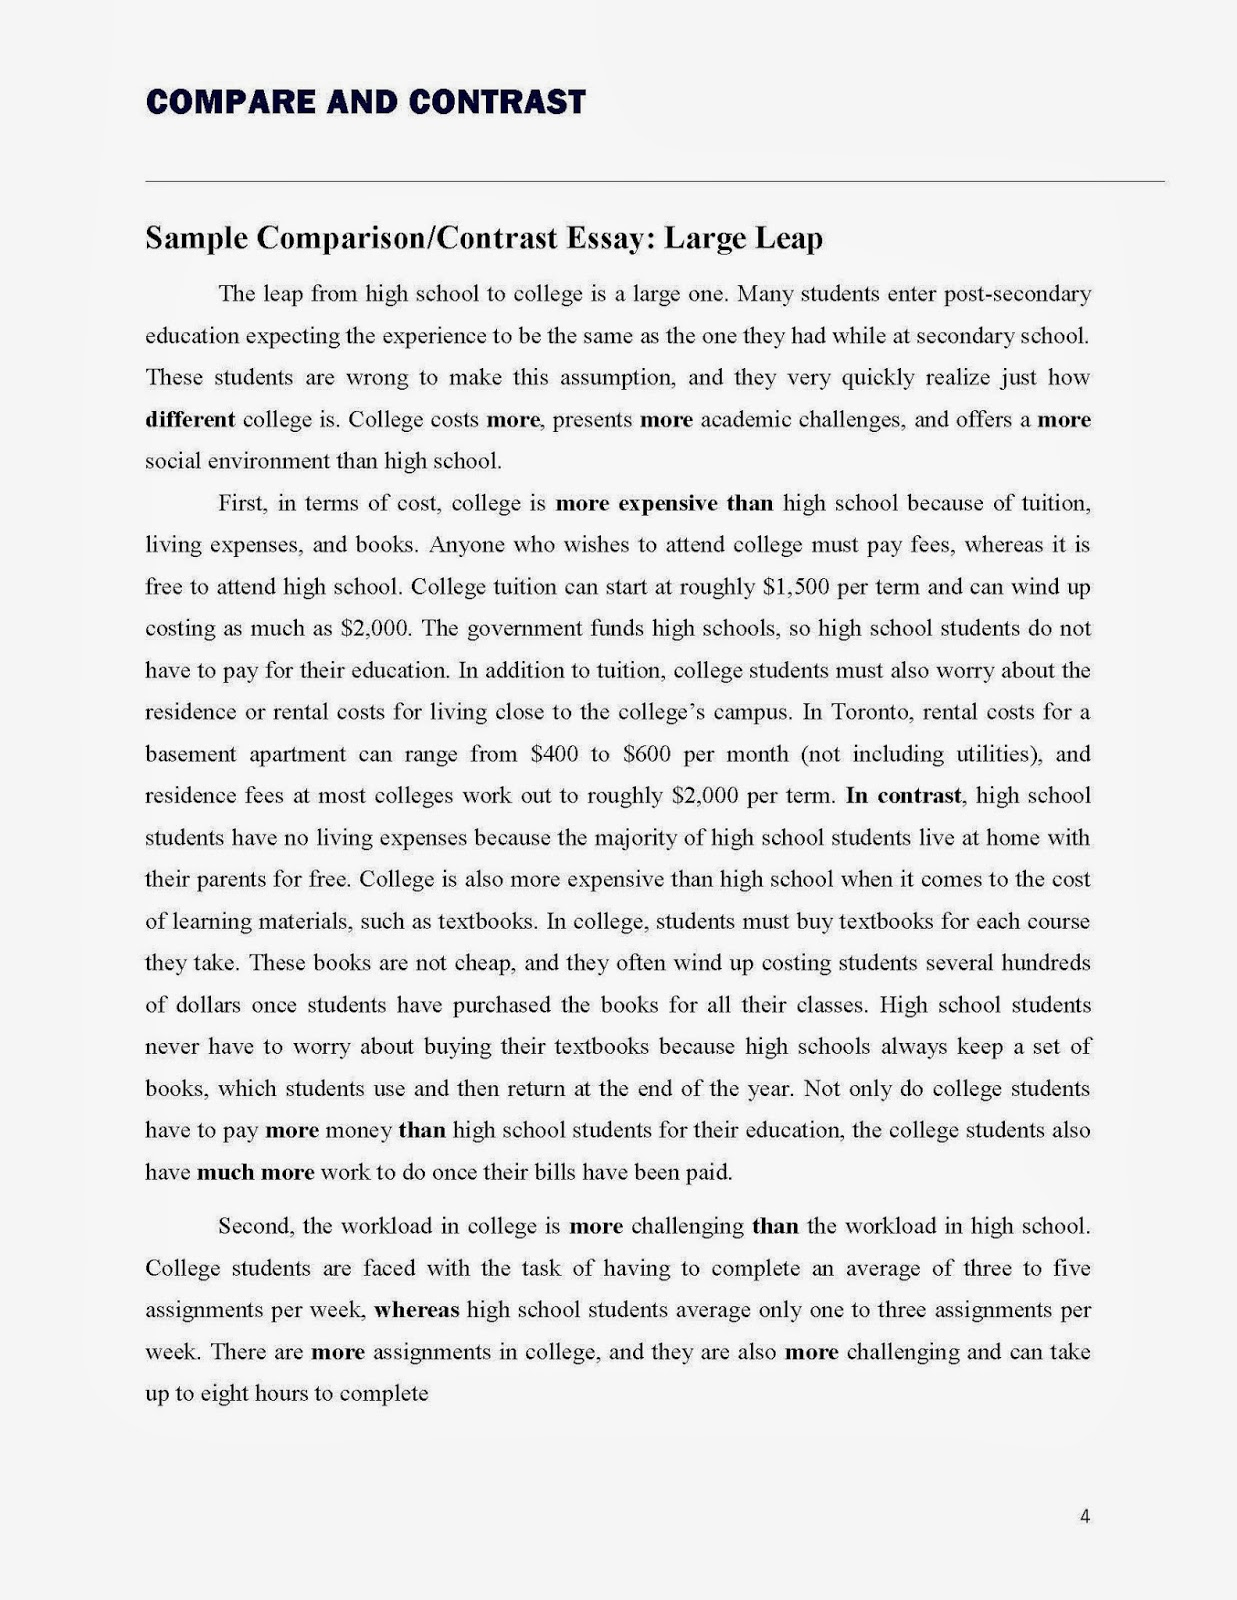 003 Comparison And Contrast Essay Topics Compare20and20contrast20essay Page 4 Unforgettable For High School Compare Prompts Middle Full